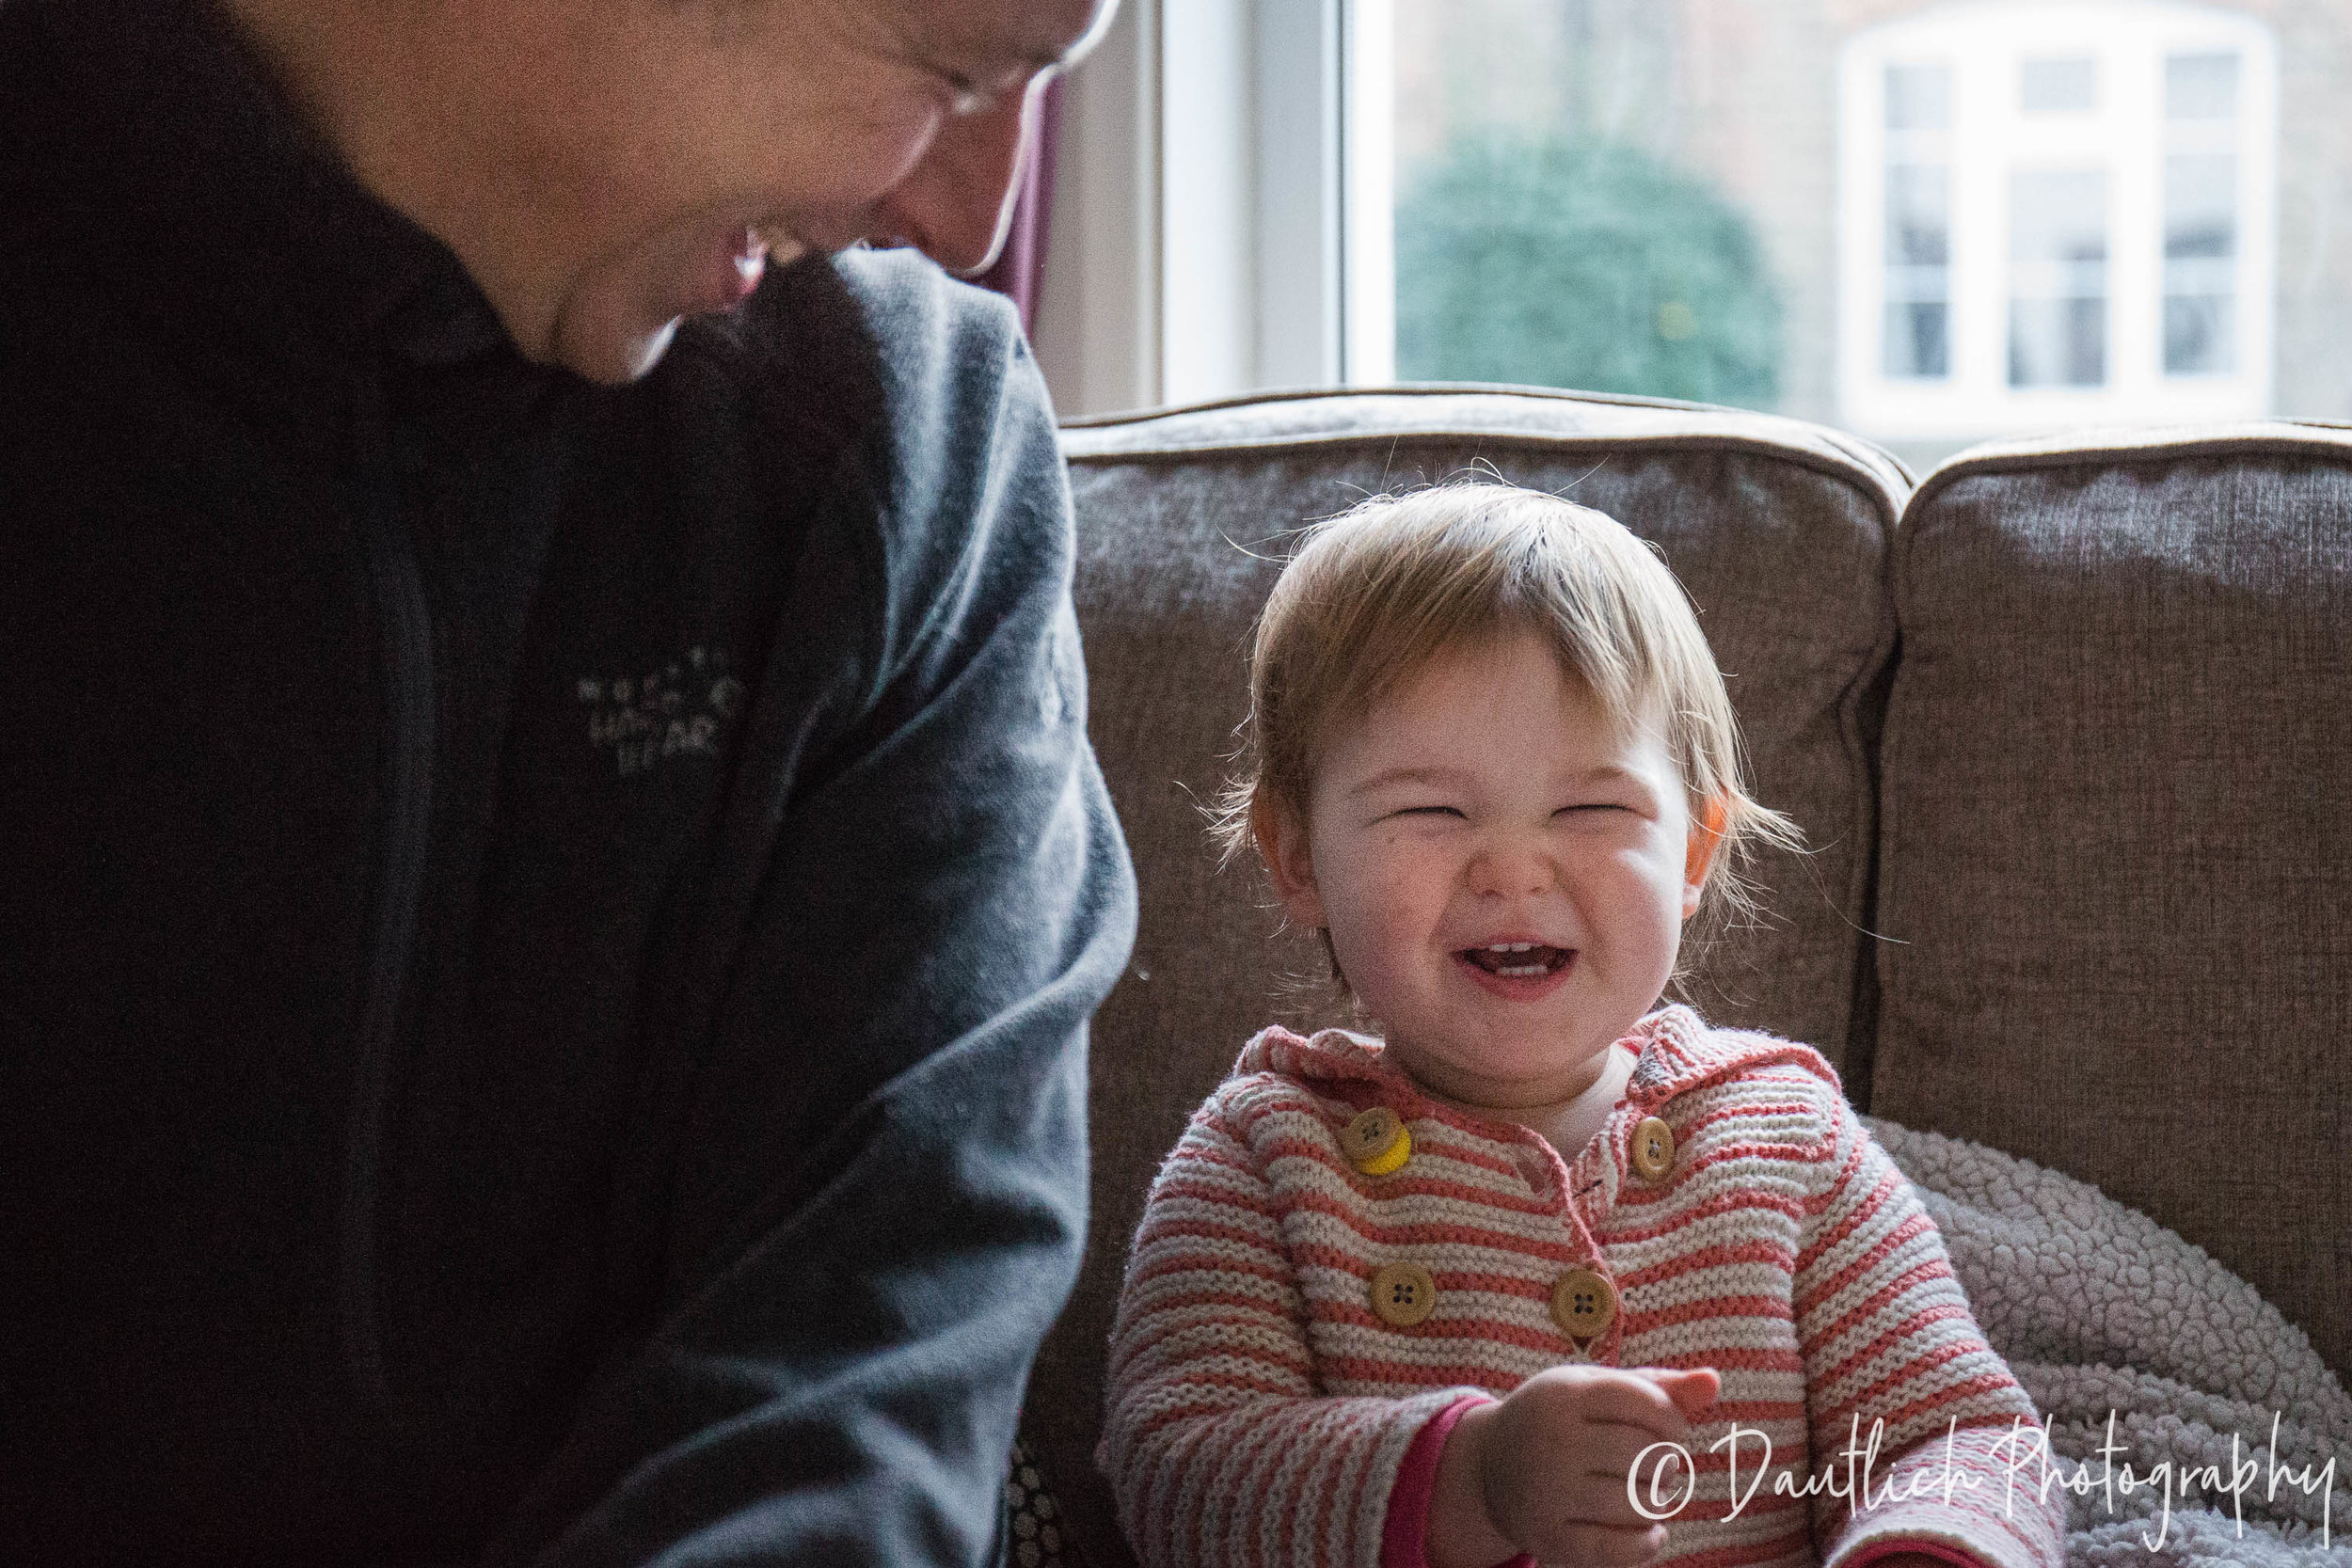 Toddler and dada laughing on the sofa together.